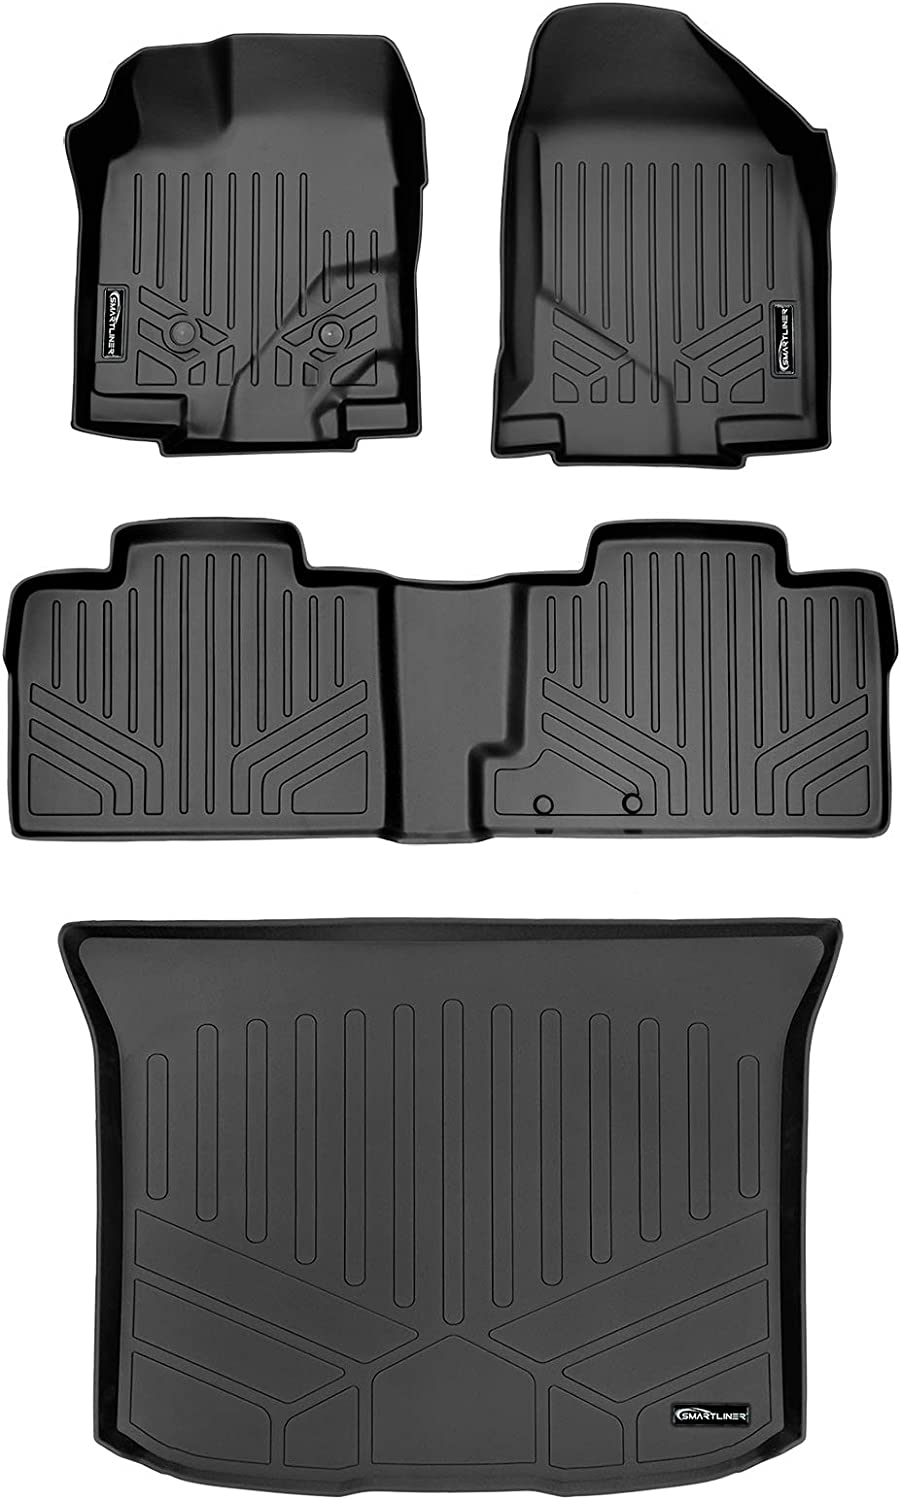 SMARTLINER Custom Fit Floor Mats 2 Rows and Cargo Liner Set Black for 2011-2014 Ford Edge 2011-2015 Lincoln MKX